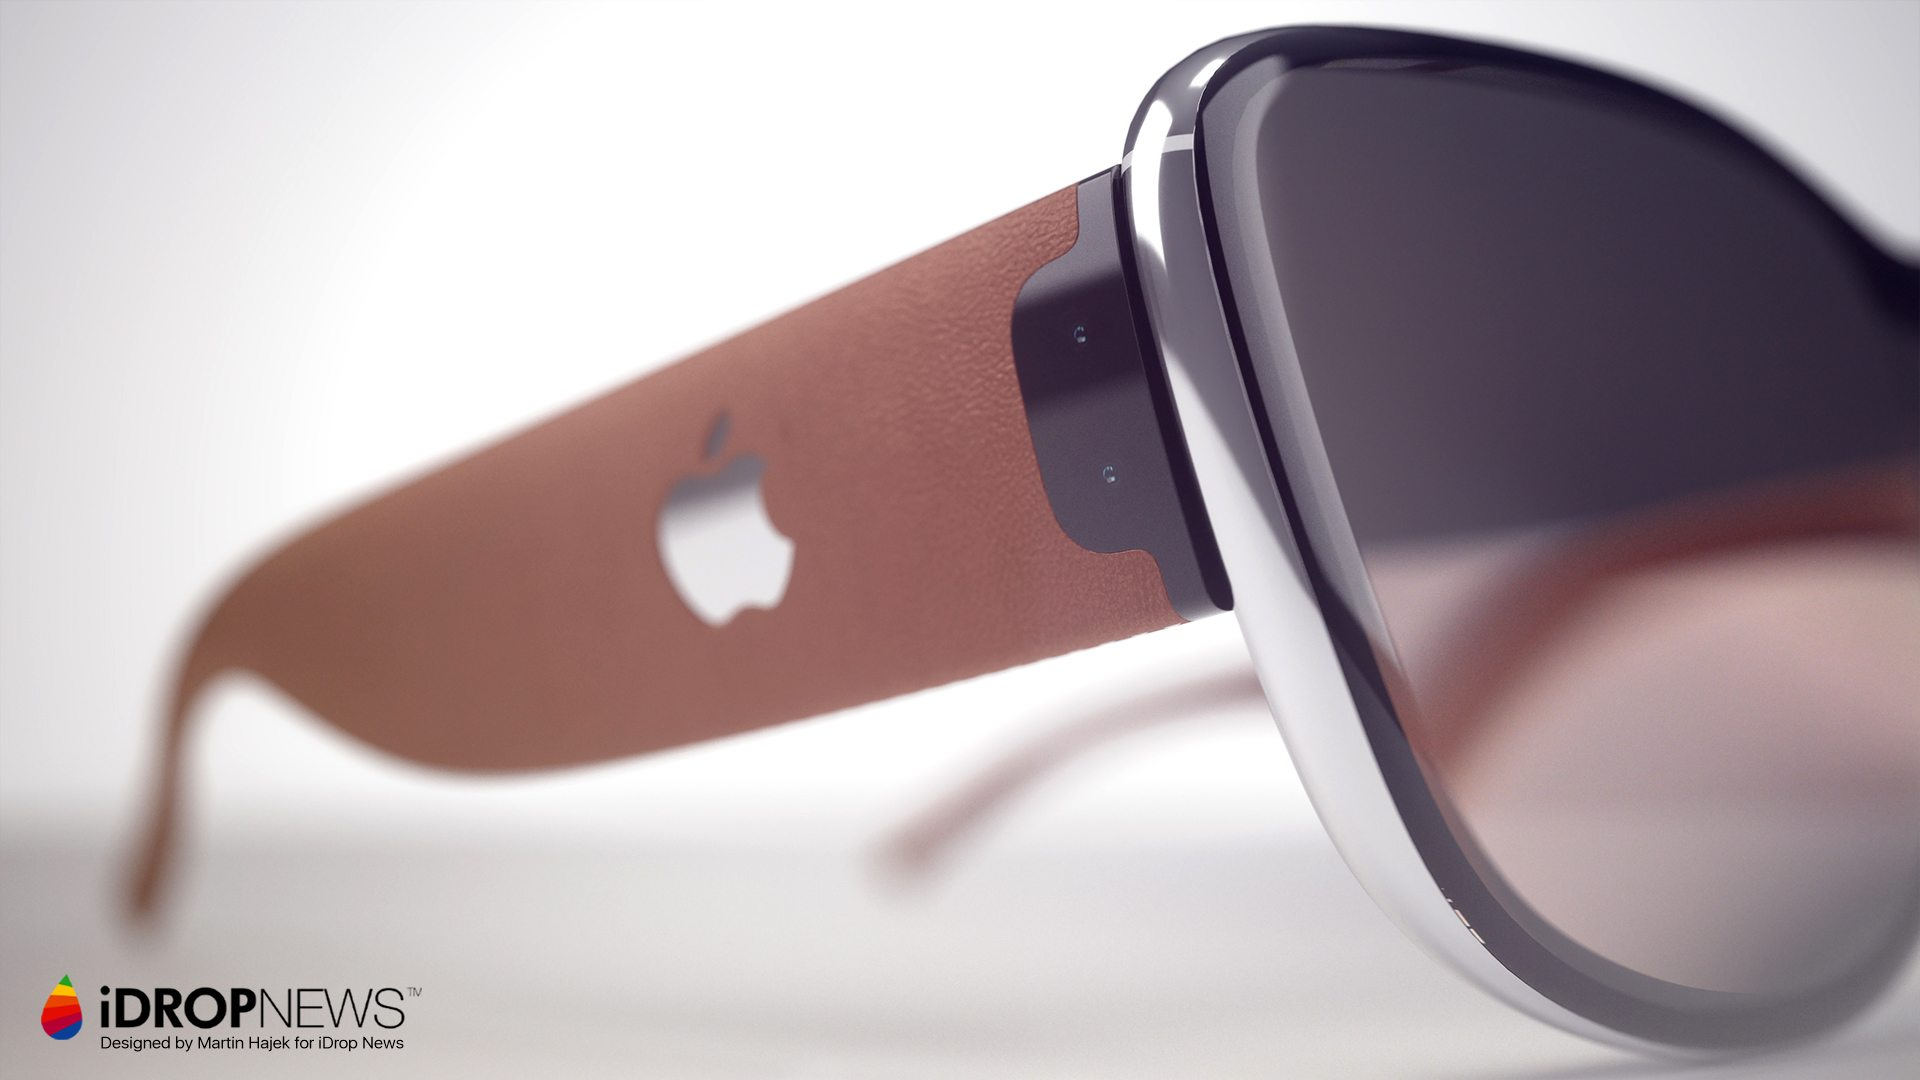 Apple-Glass-AR-Glasses-iDrop-News-x-Martin-Hajek-3jpg